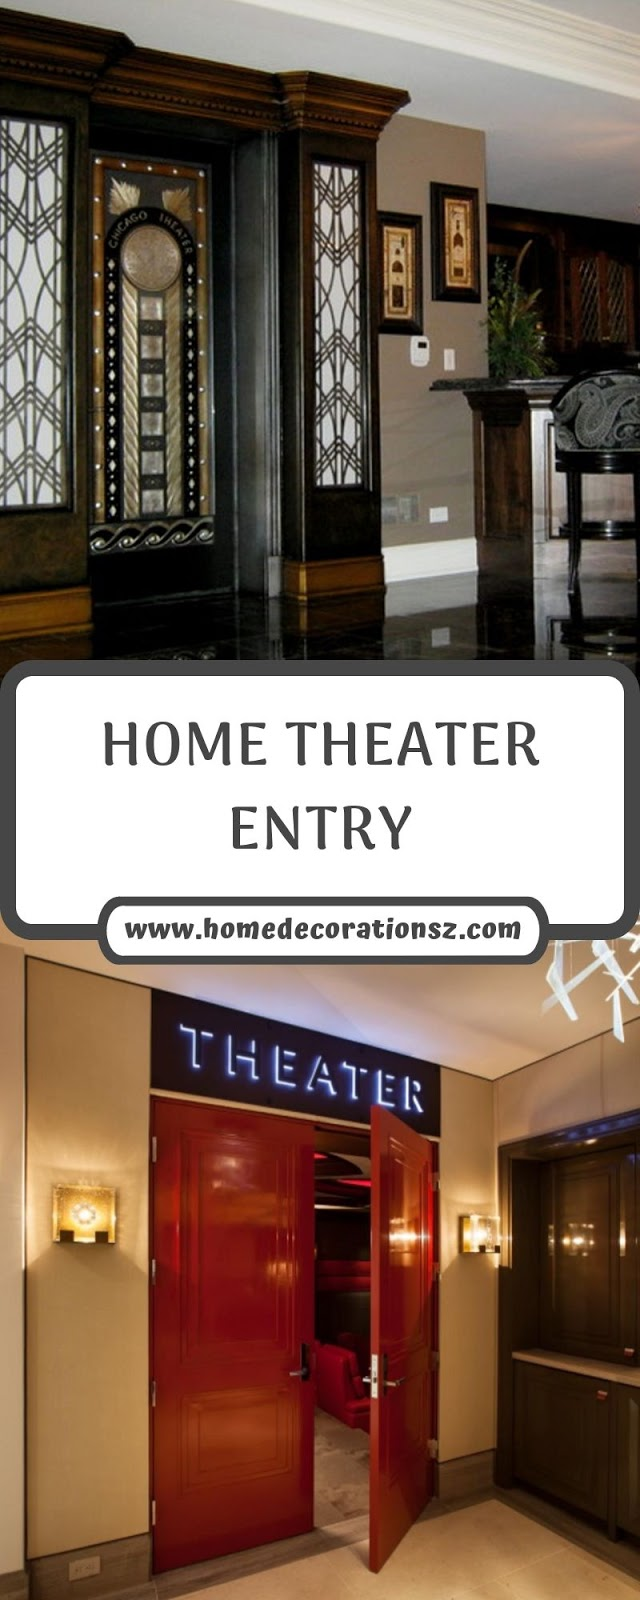 HOME THEATER ENTRY